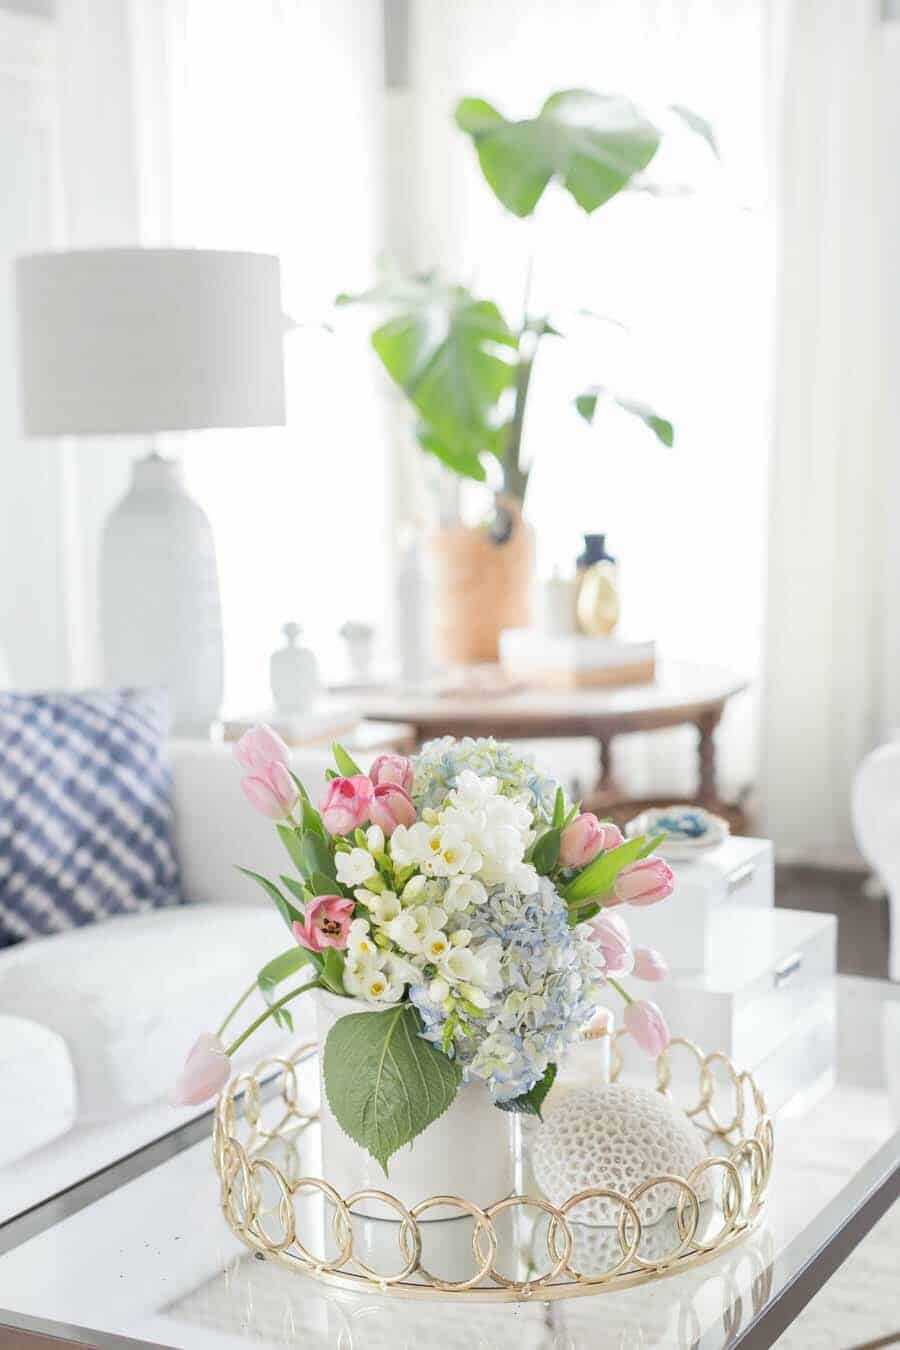 How To Decorate Your Home With Spring Flower Arrangements-25-1 Kindesign